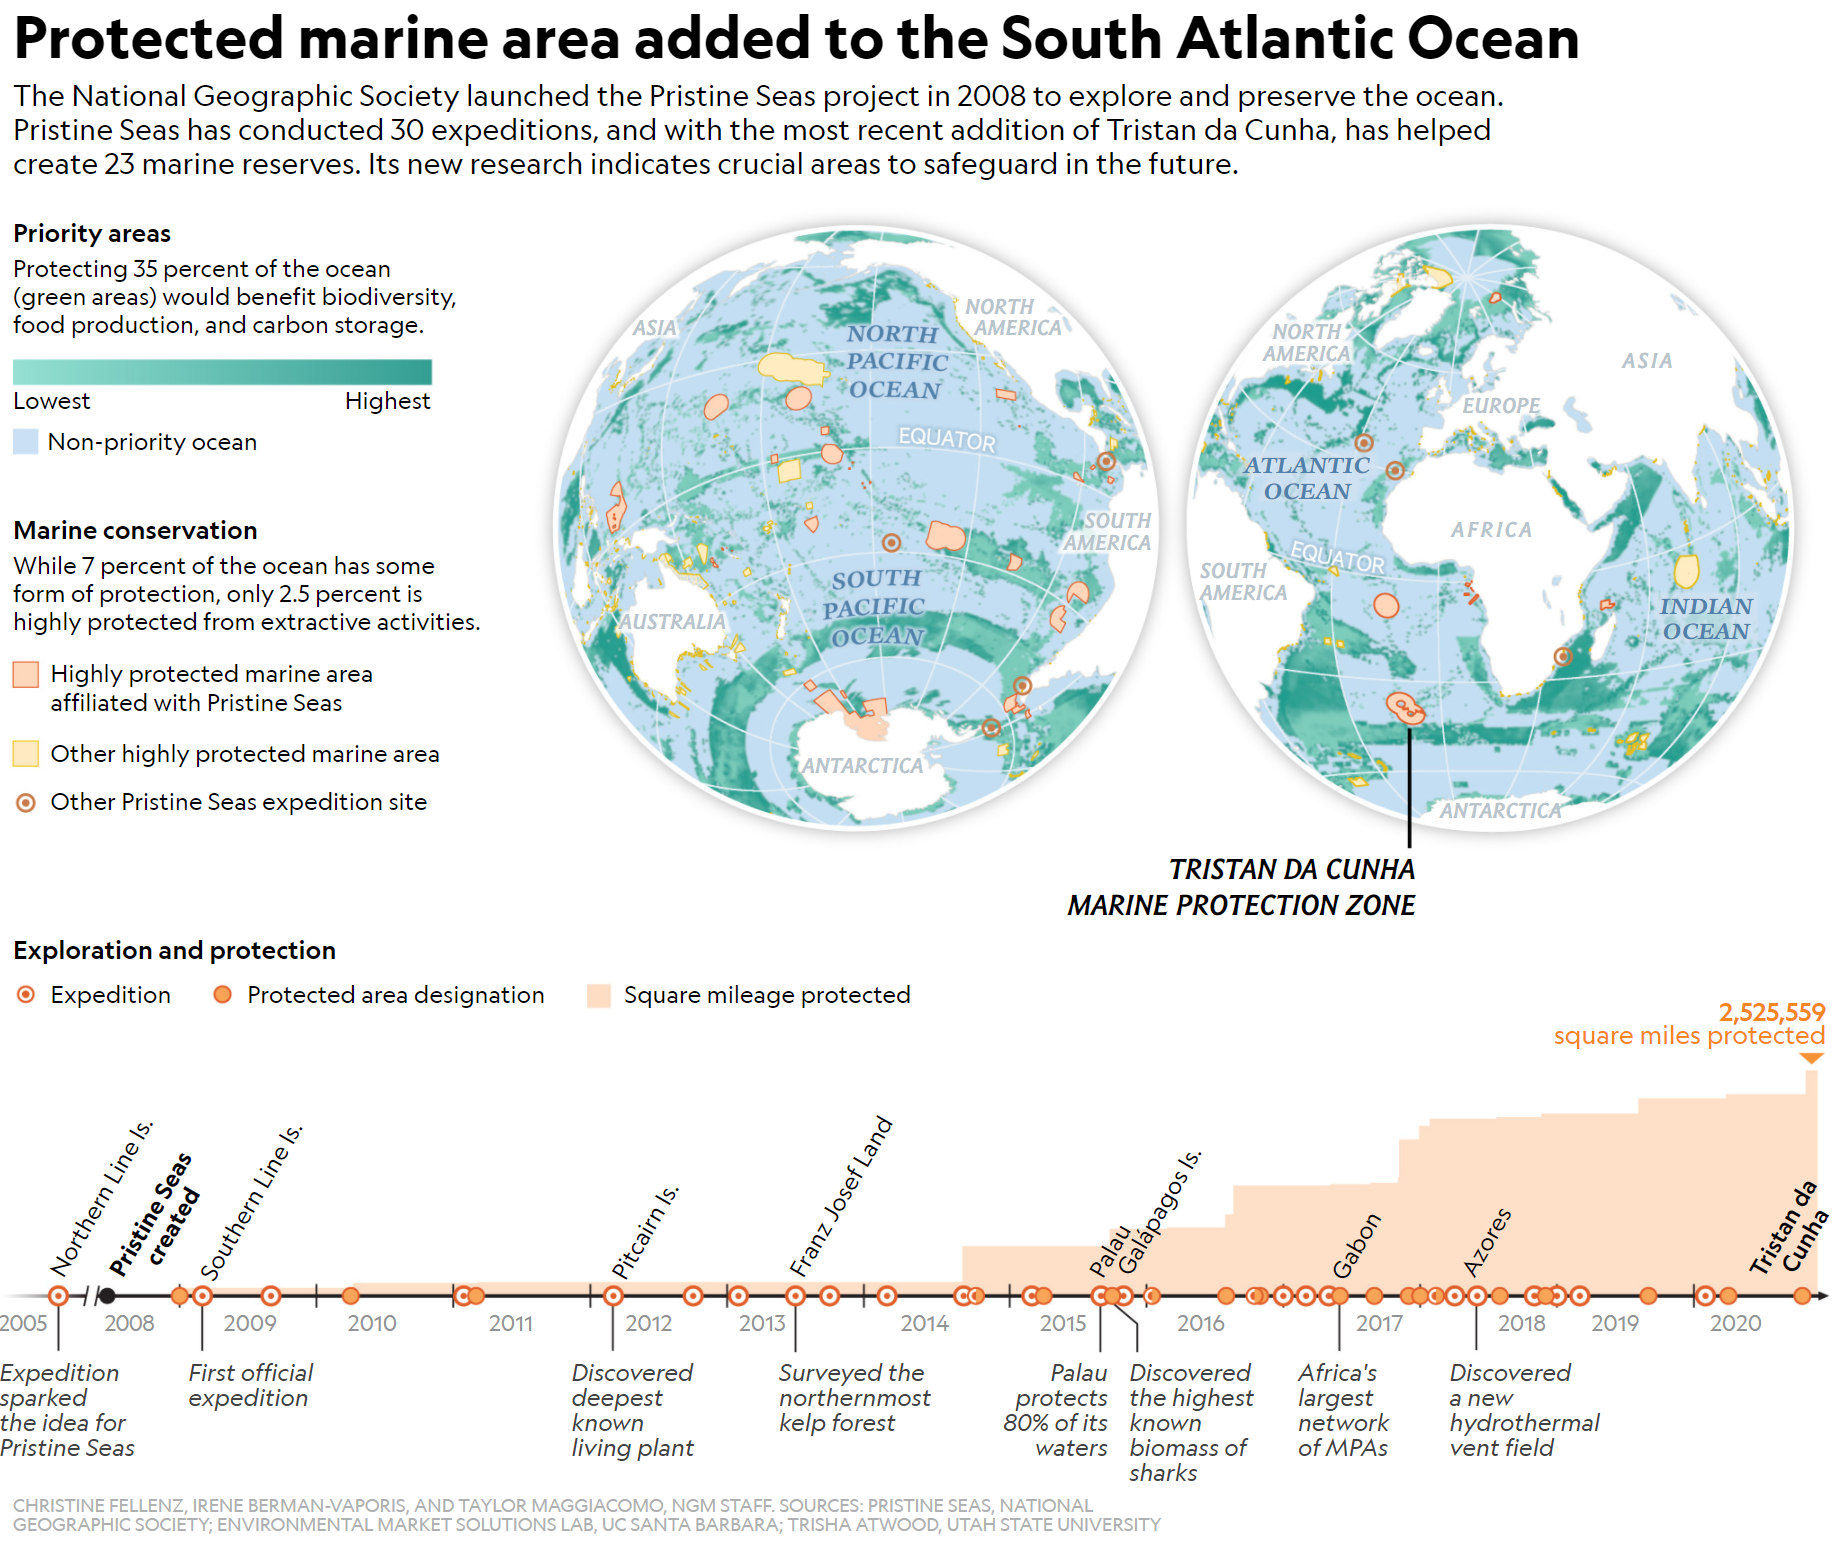 maps of conservation zones in the Atlantic